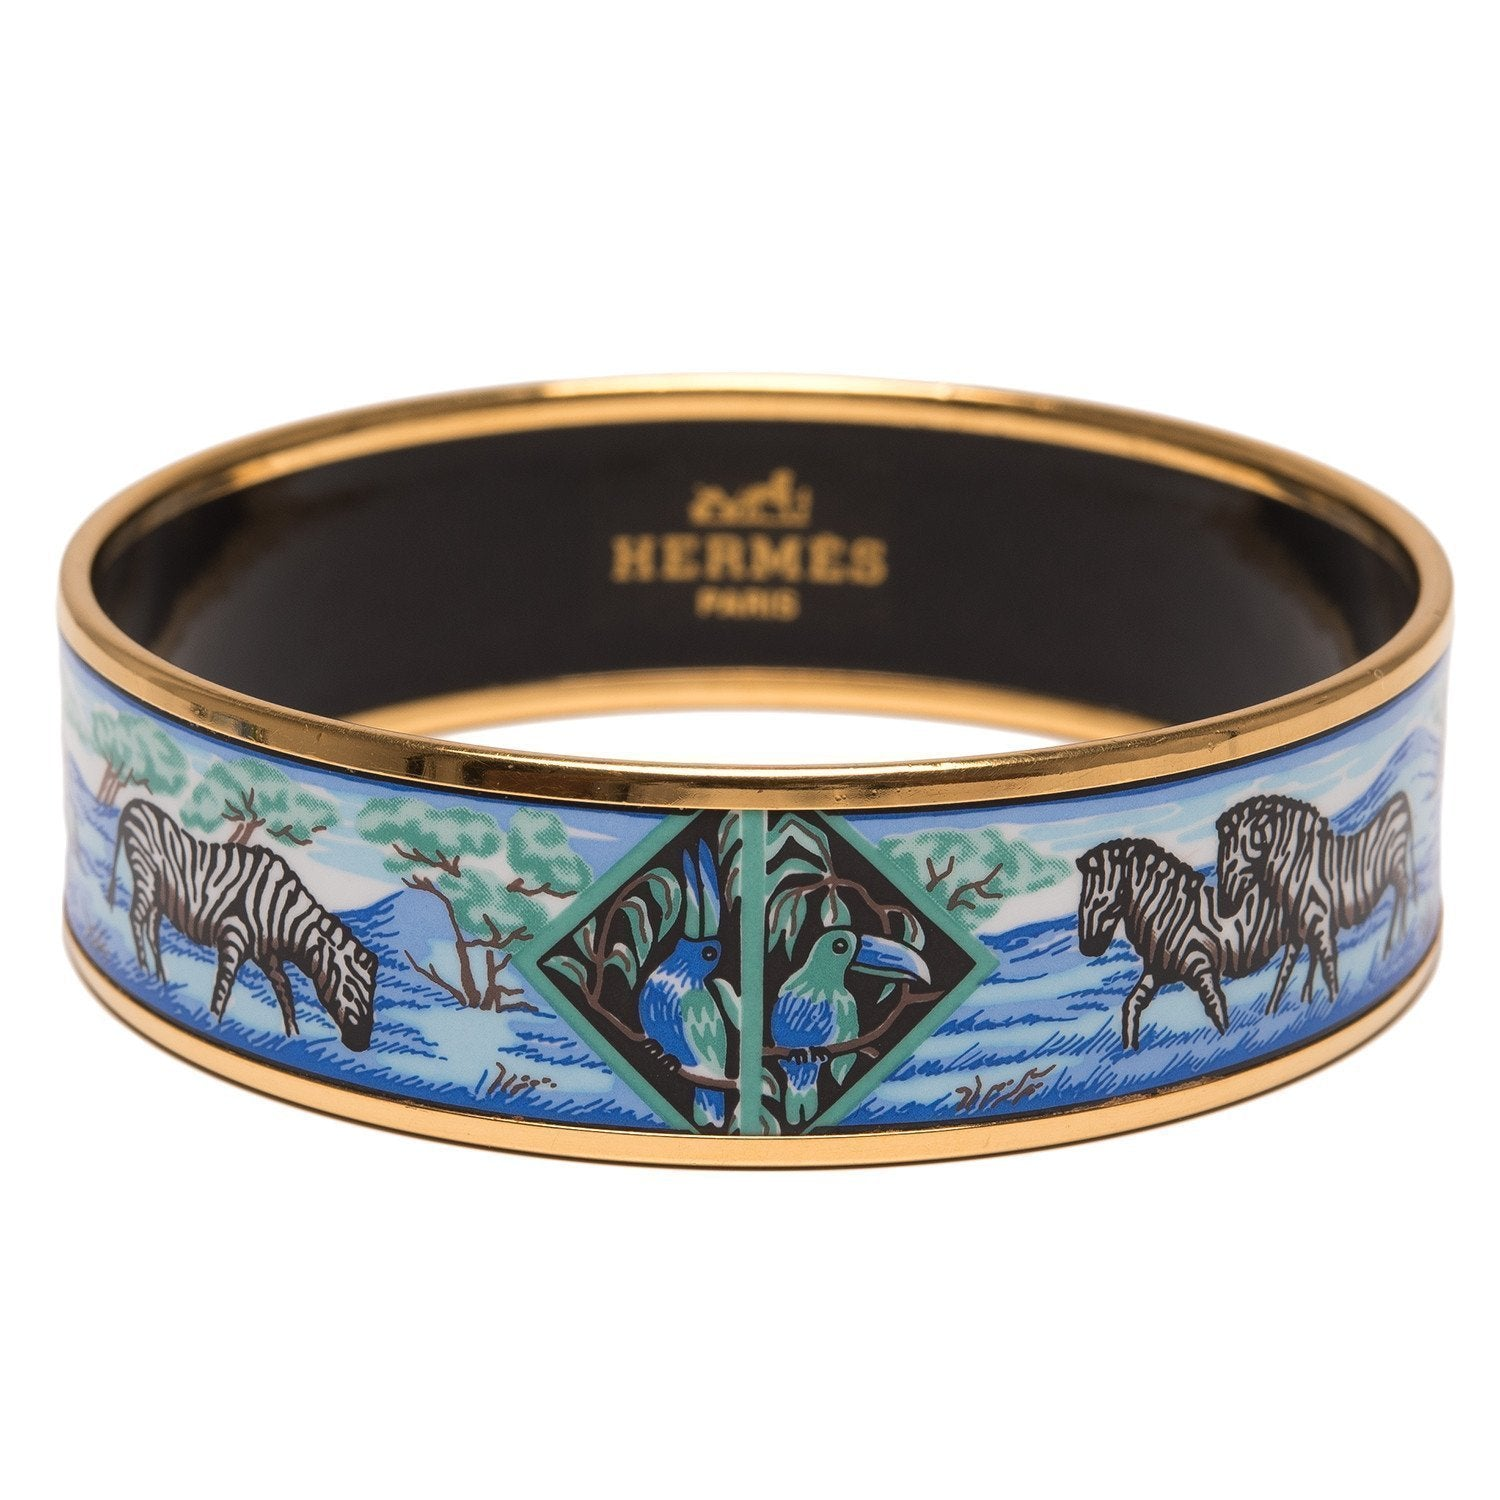 Hermes Zebras Wide Printed Enamel Bracelet Gm 70 Preloved Excellent Accessories